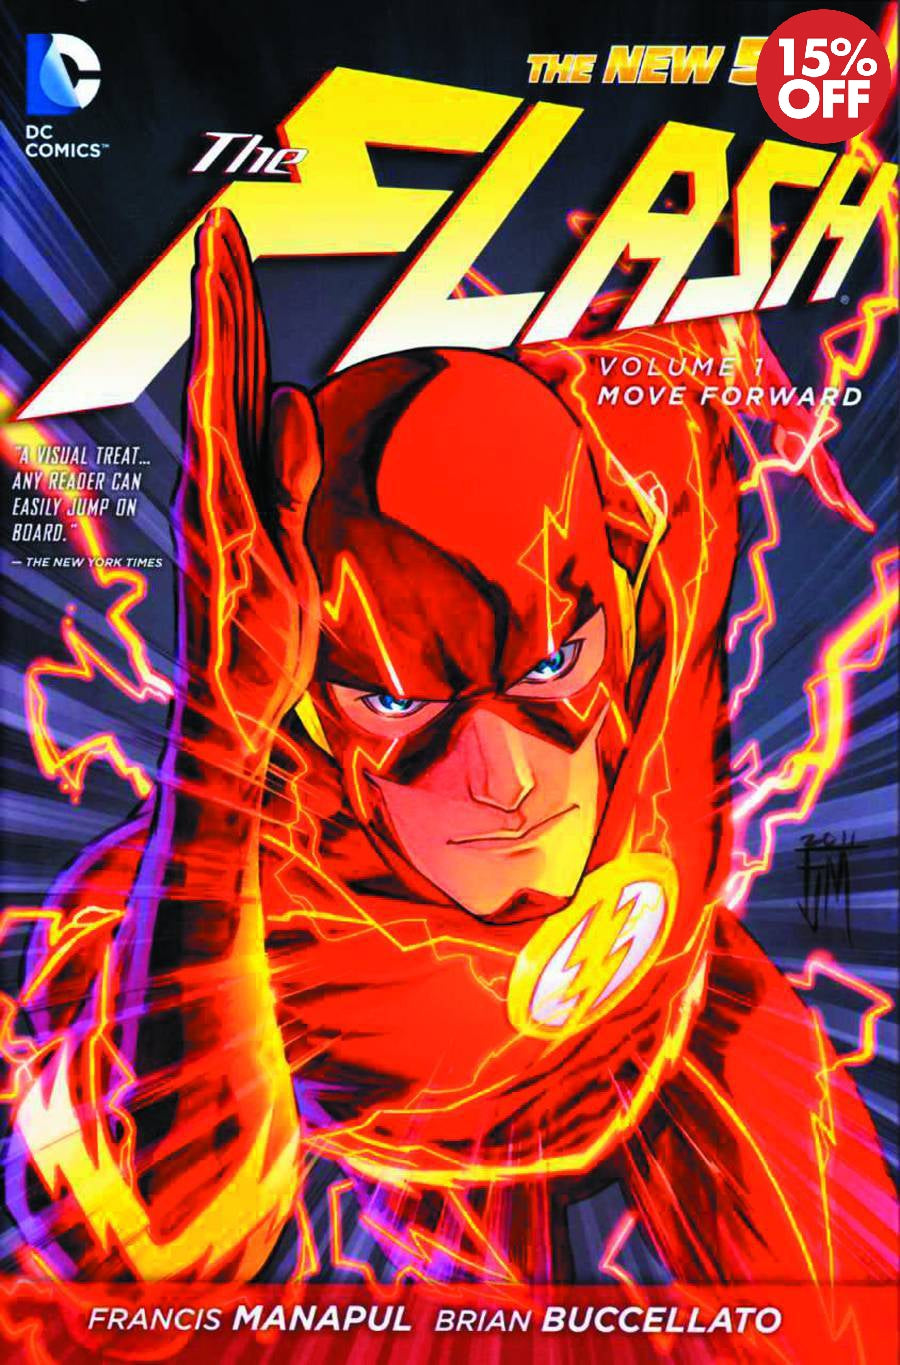 FLASH TP VOL 01 MOVE FORWARD (N52)